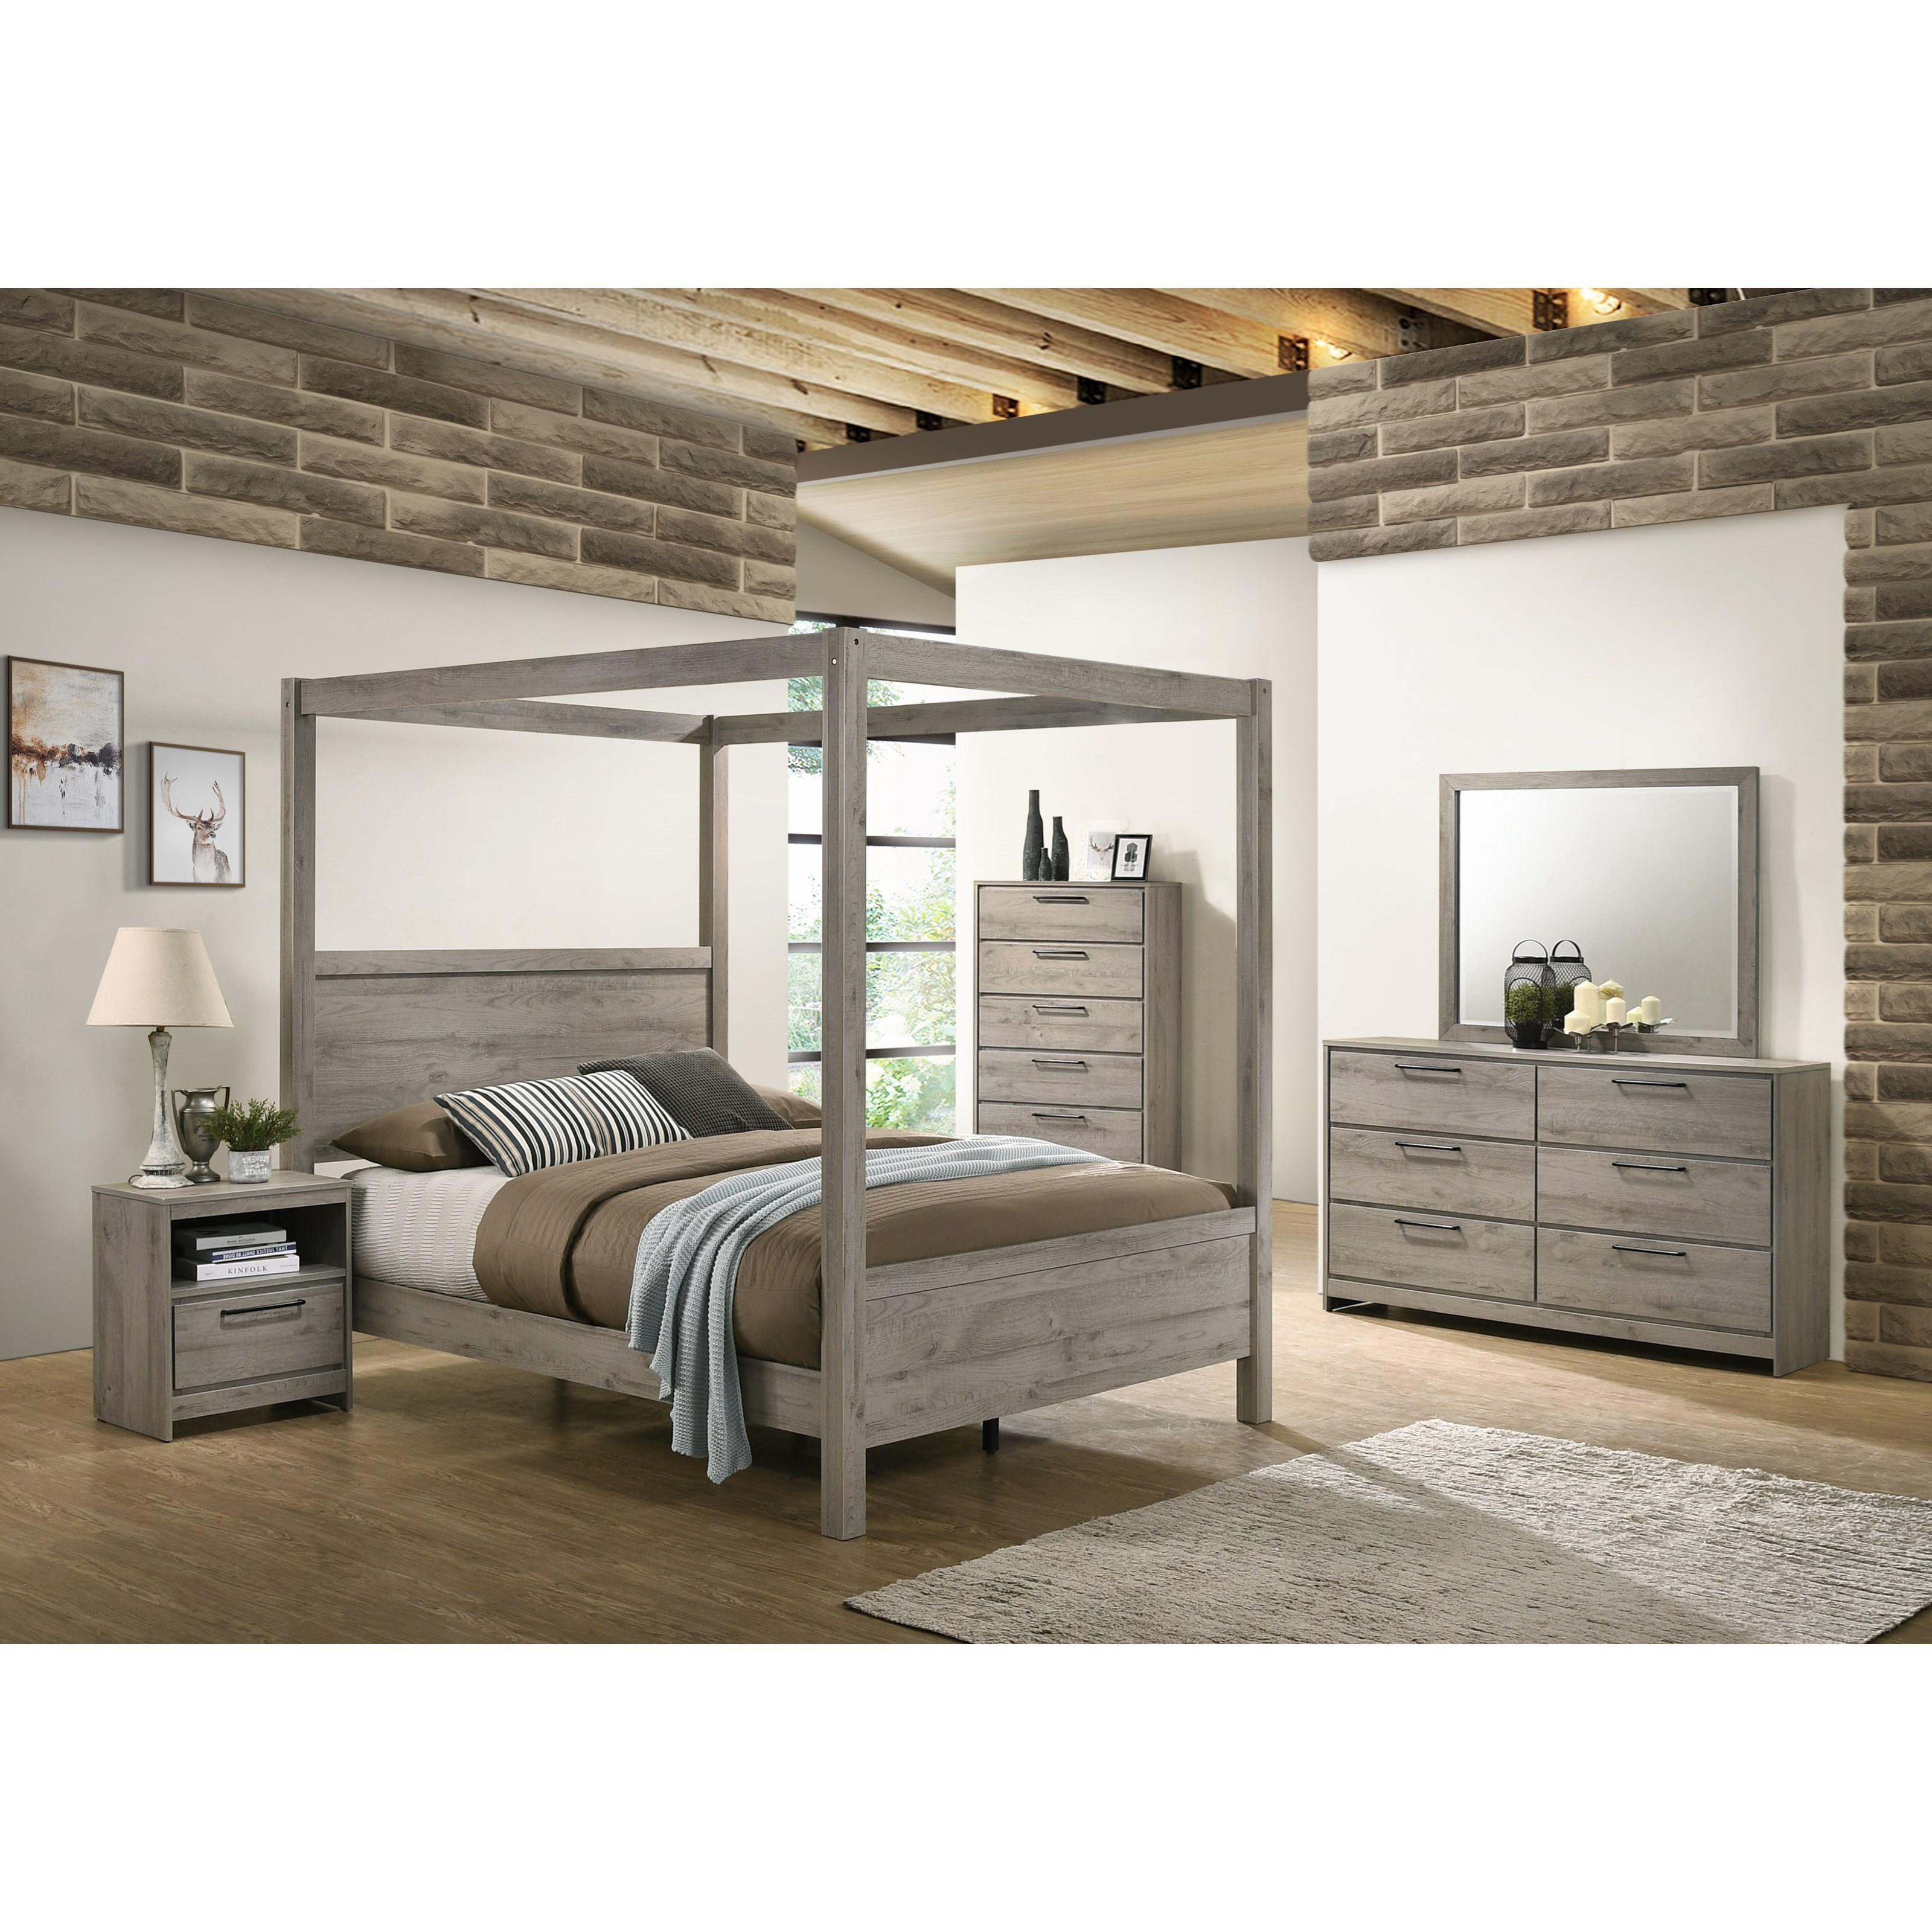 Alix Full Bedroom Group by Standard Furniture at Beds N Stuff